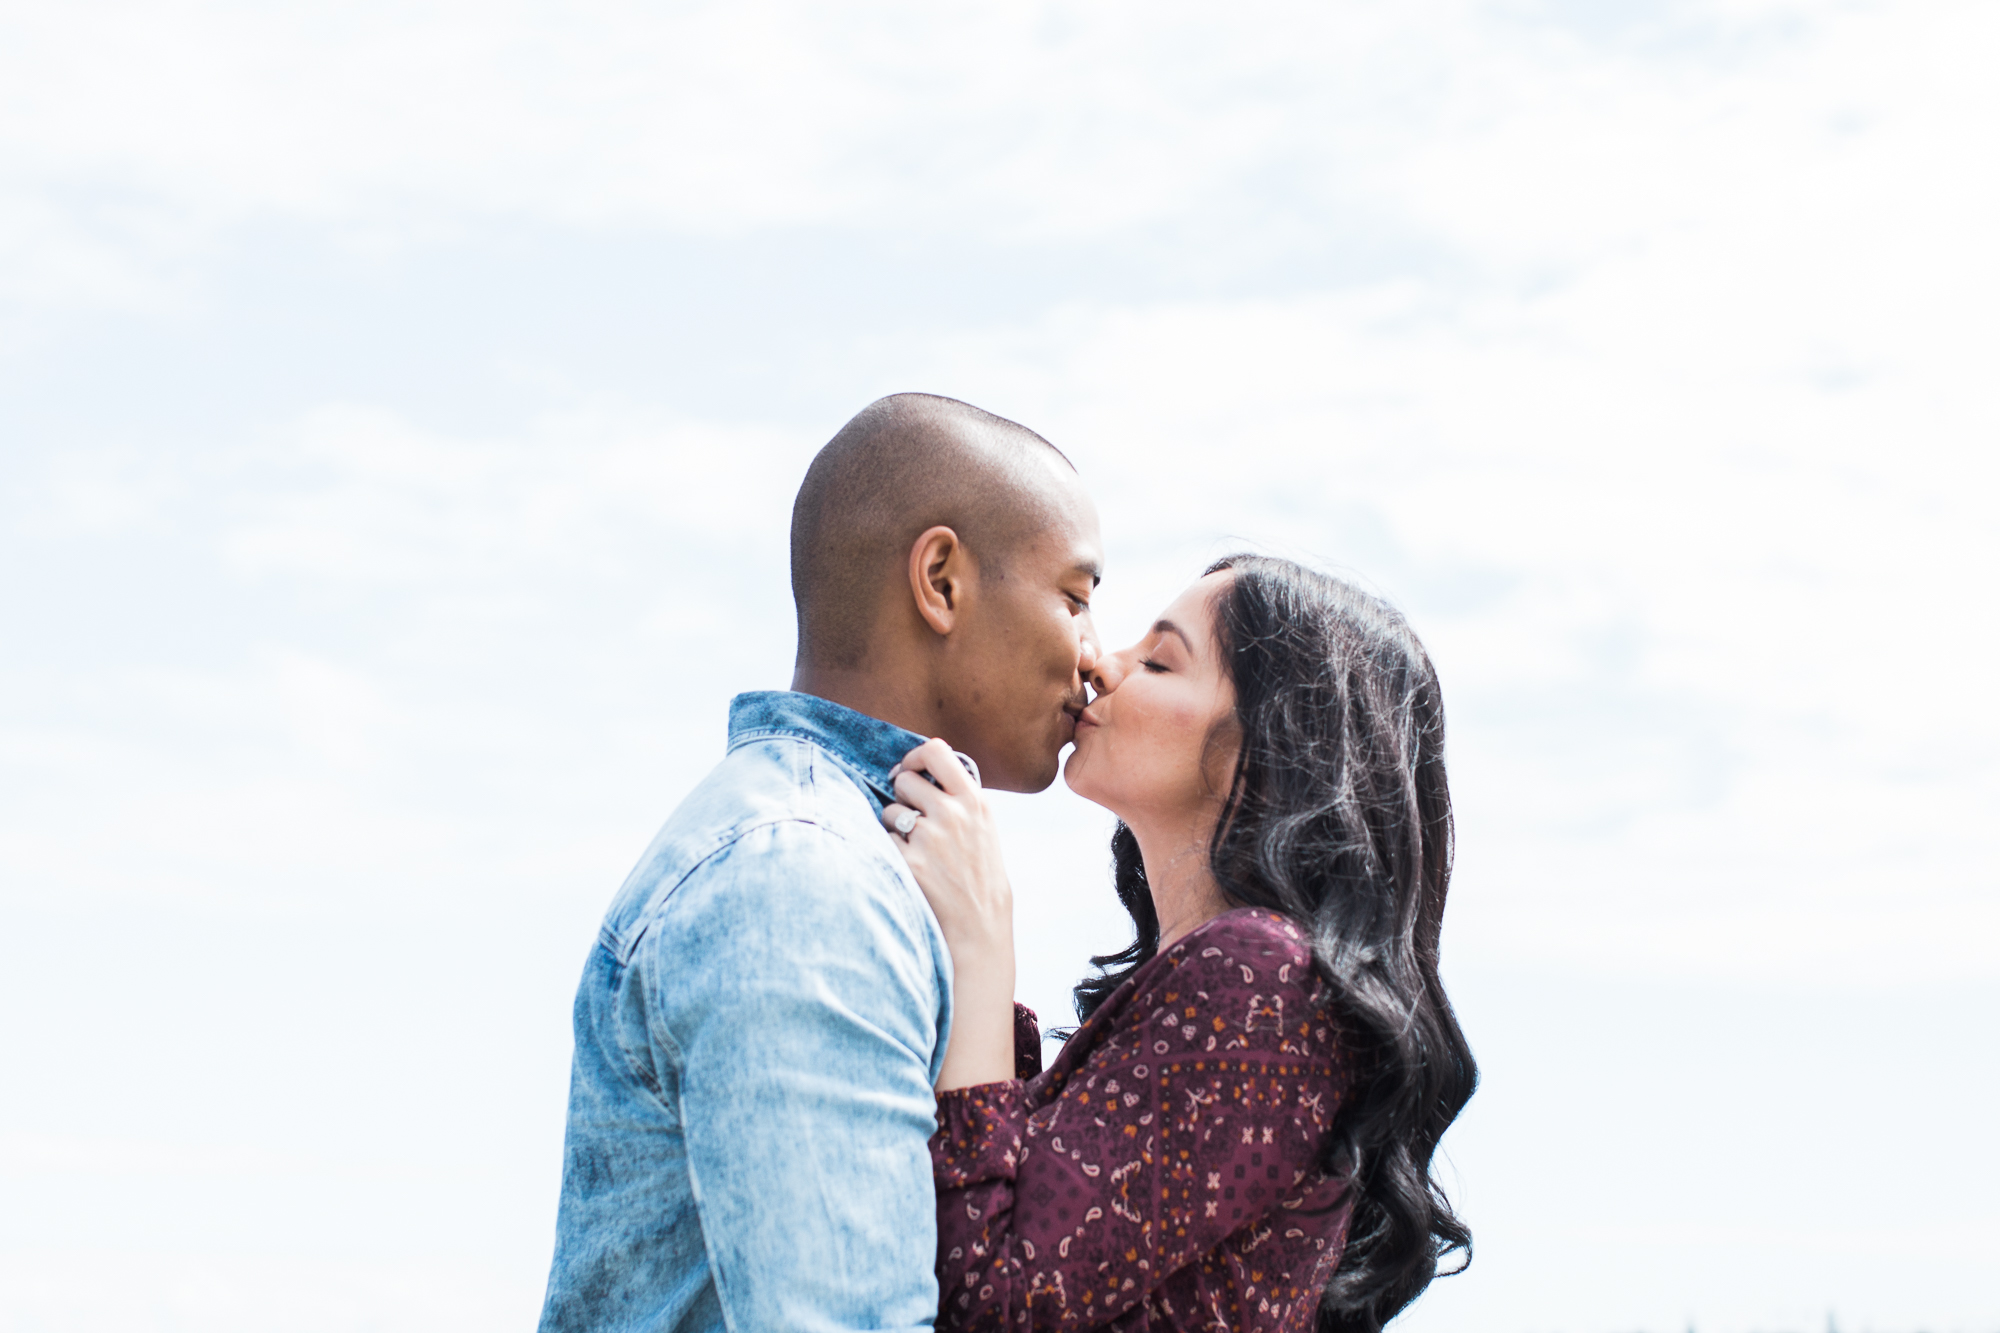 sophia-elizabeth-photography-harbor-island-san-diego-airport-downtown-bay-engaged-isaidyes (111 of 121).jpg